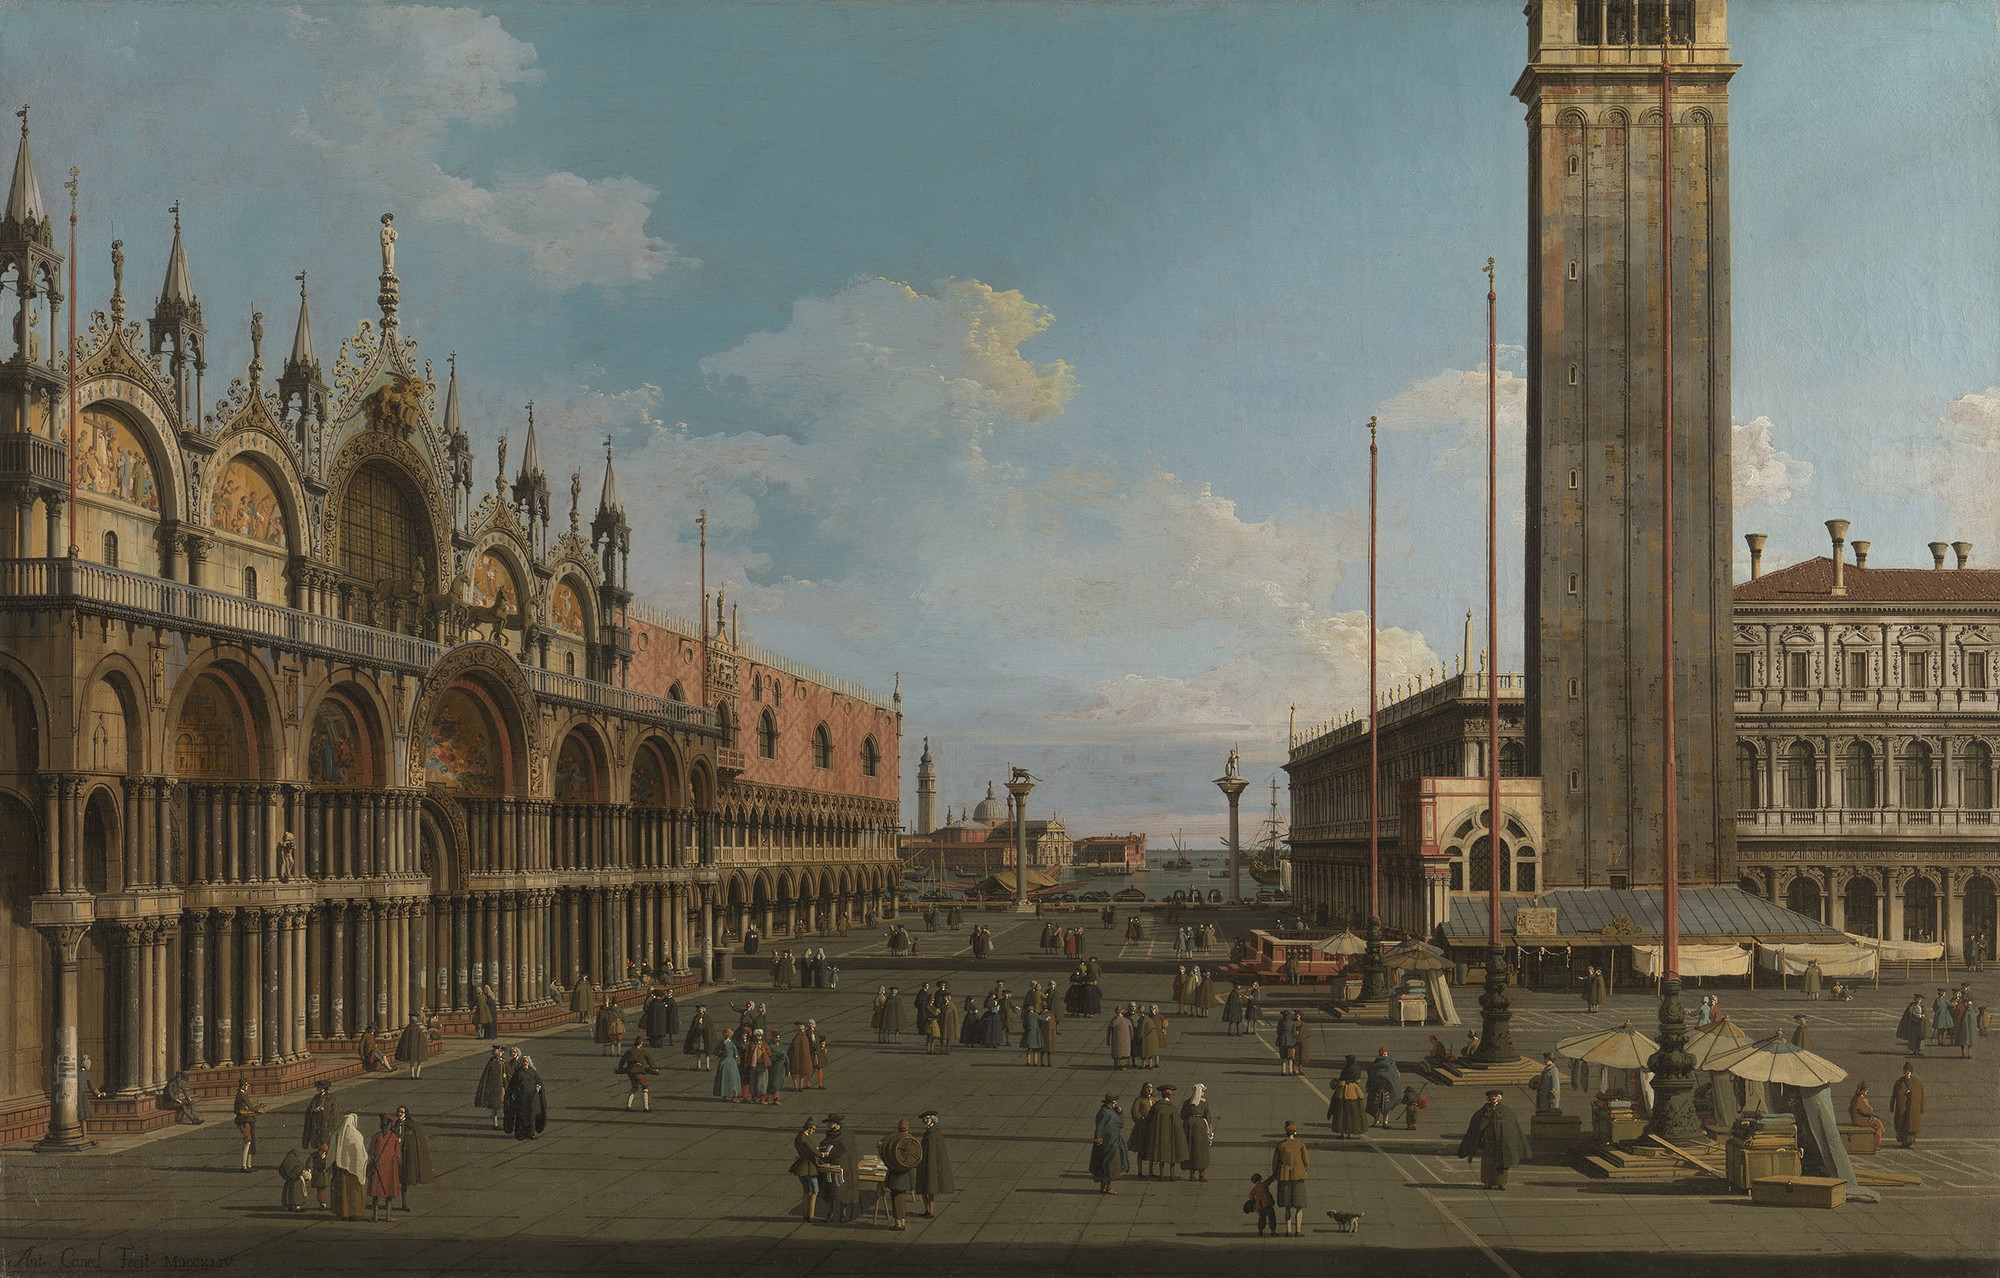 The Piazza and Piazzetta from the Torre dell'Orologio towards San Giorgio, 1744